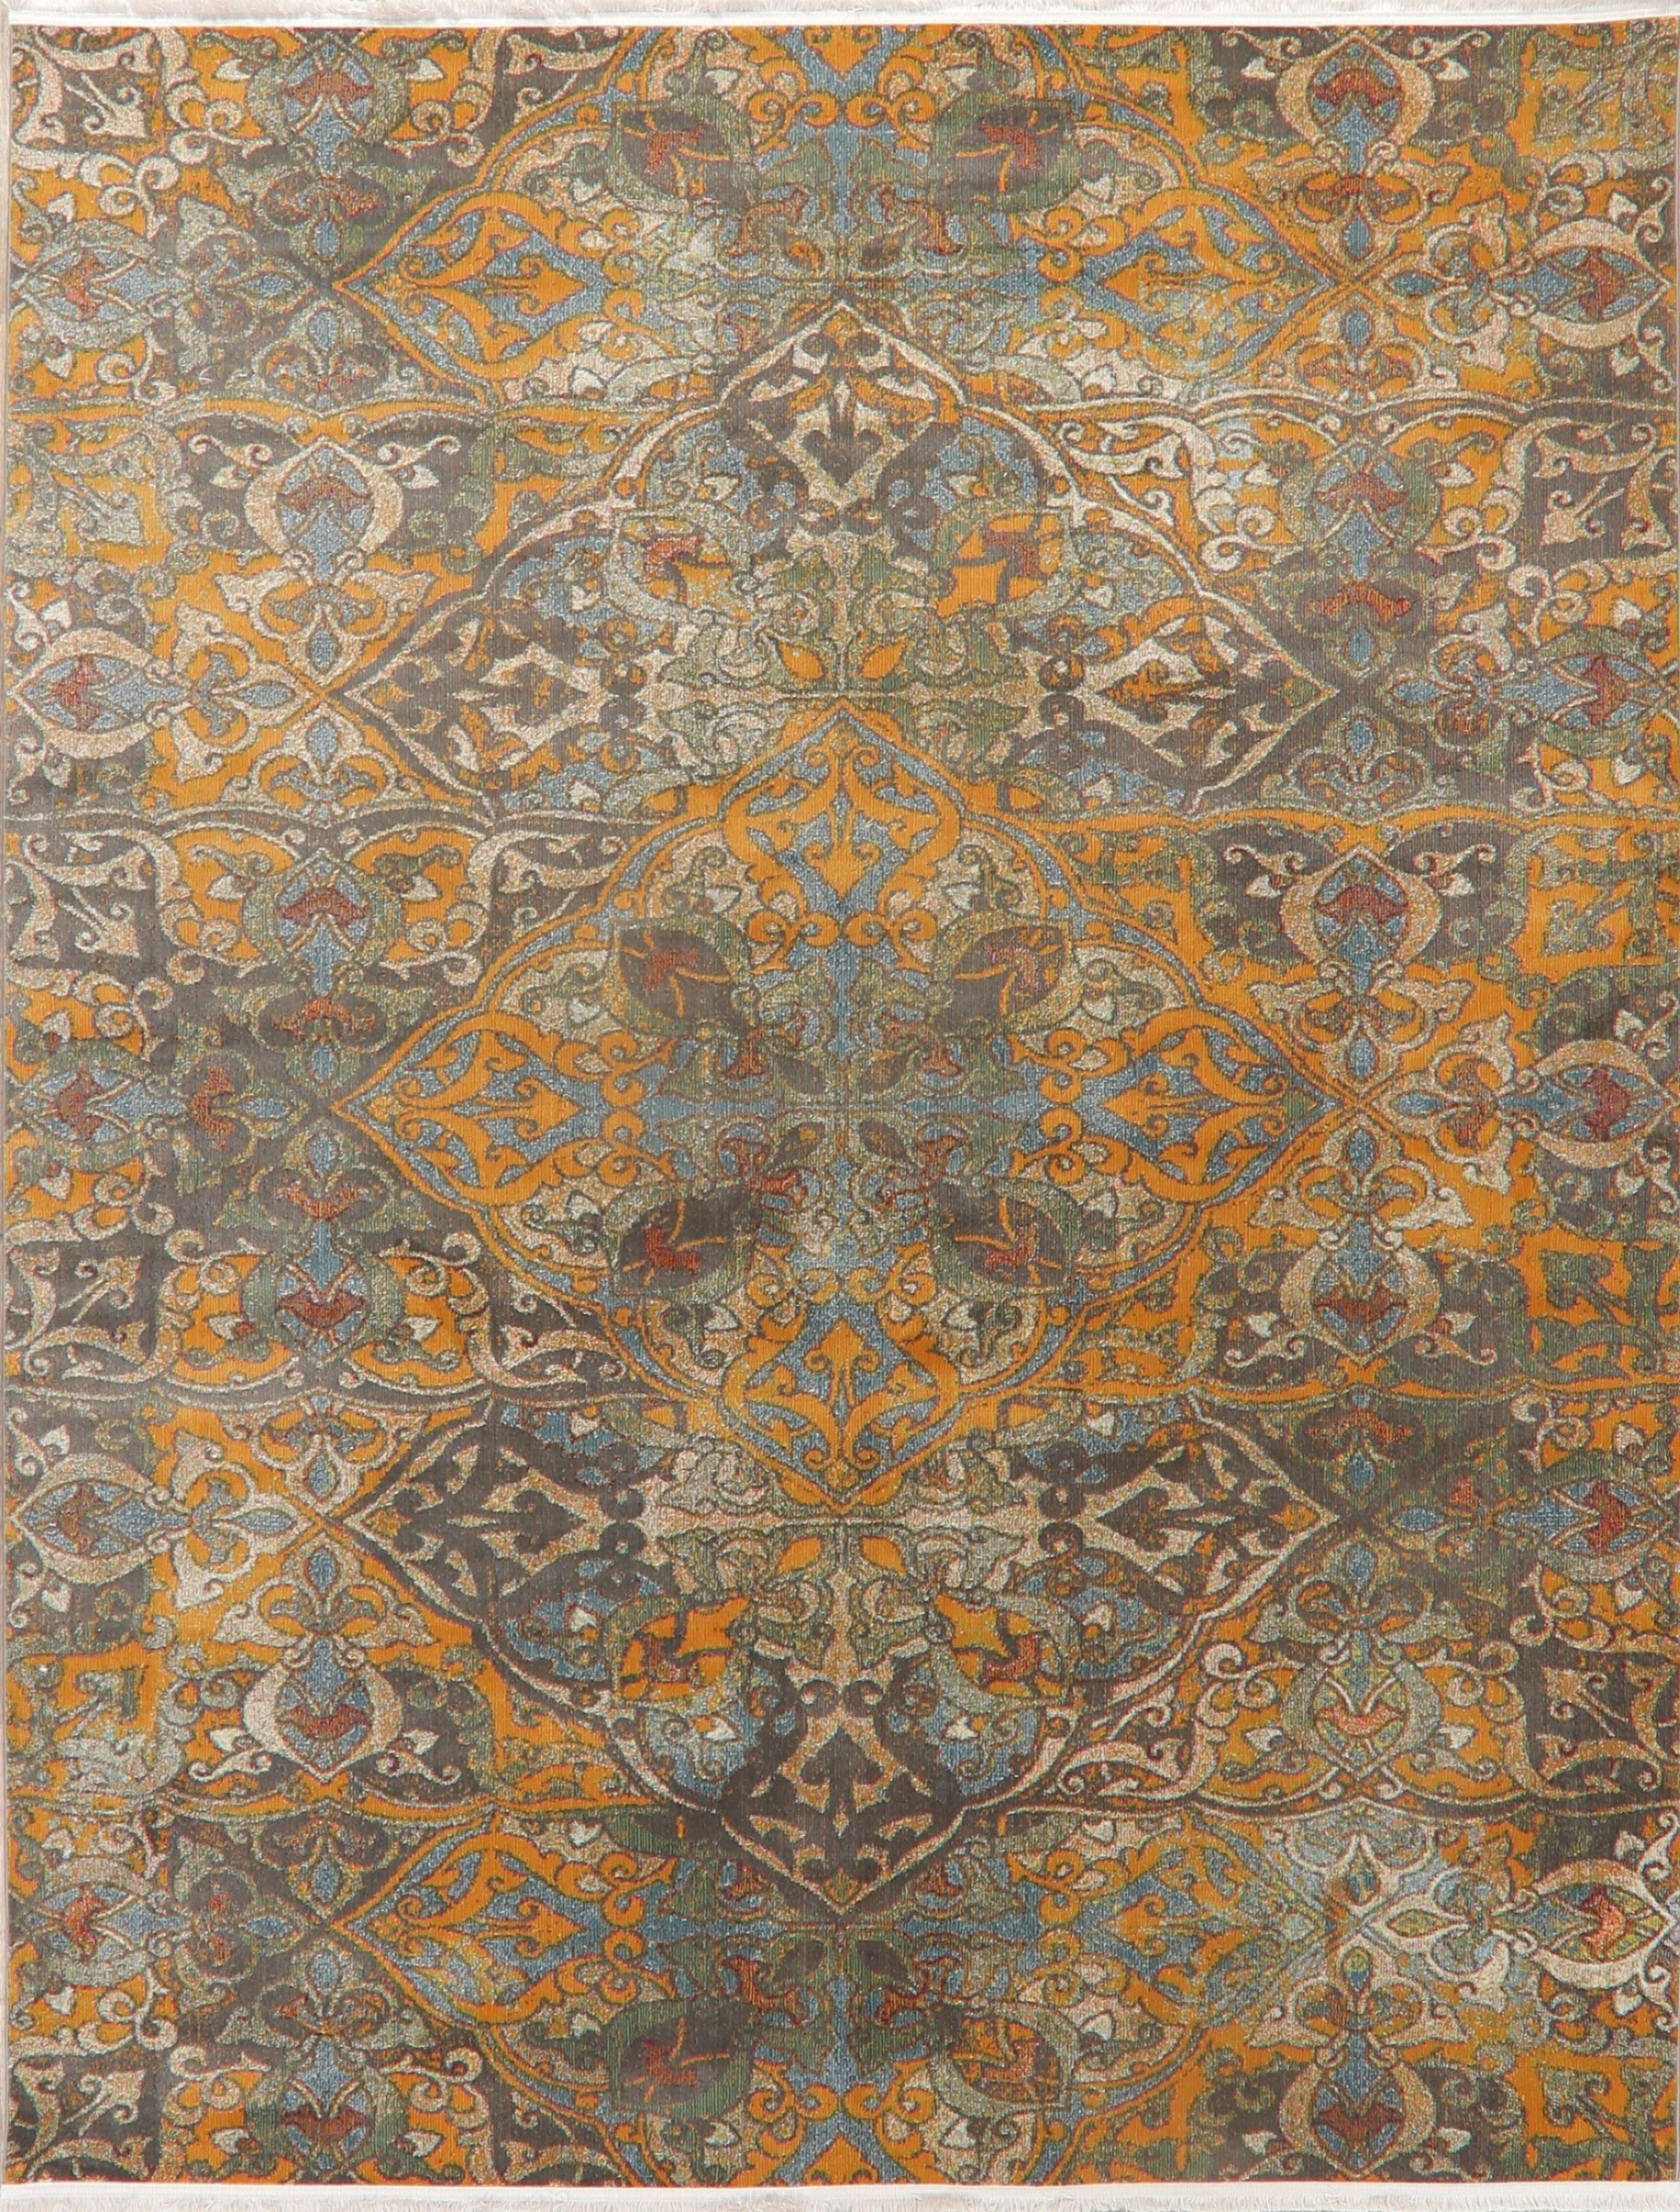 Oriental Distressed Area Rug 8x10 Faded Turkish